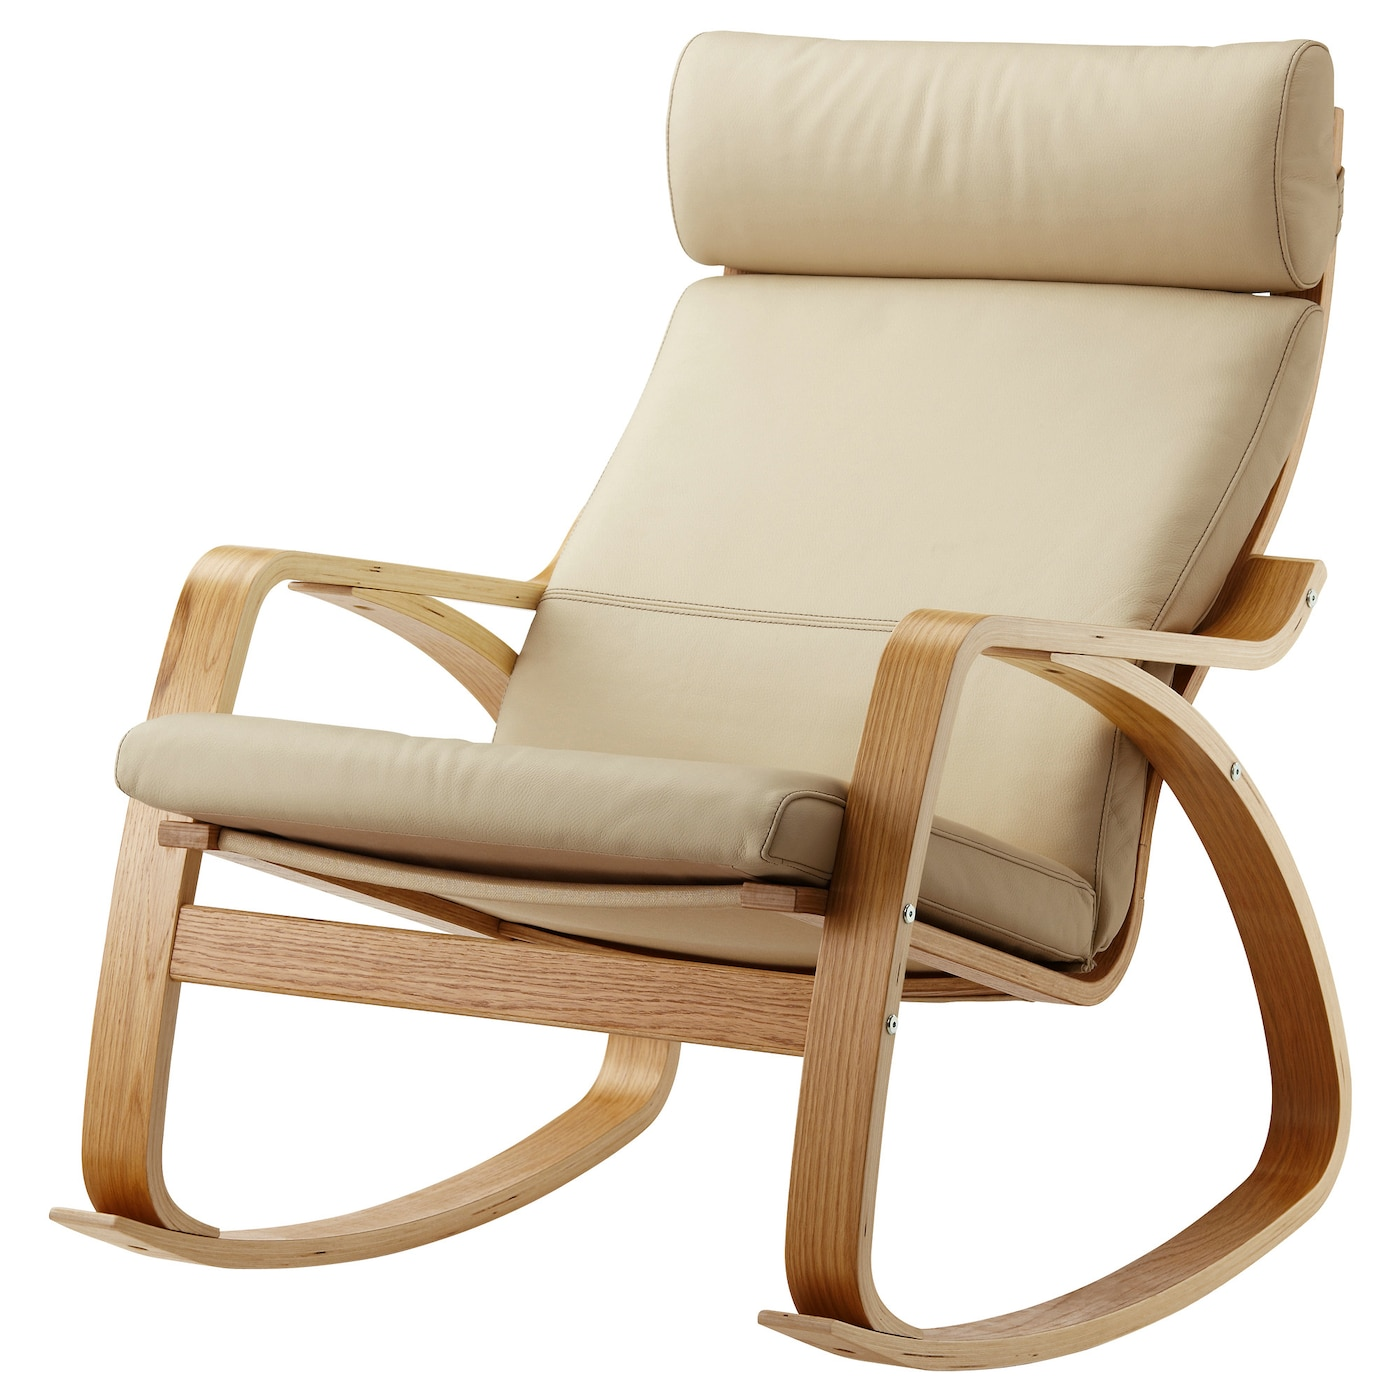 "PO""NG Rocking chair Oak veneer glose eggshell IKEA"